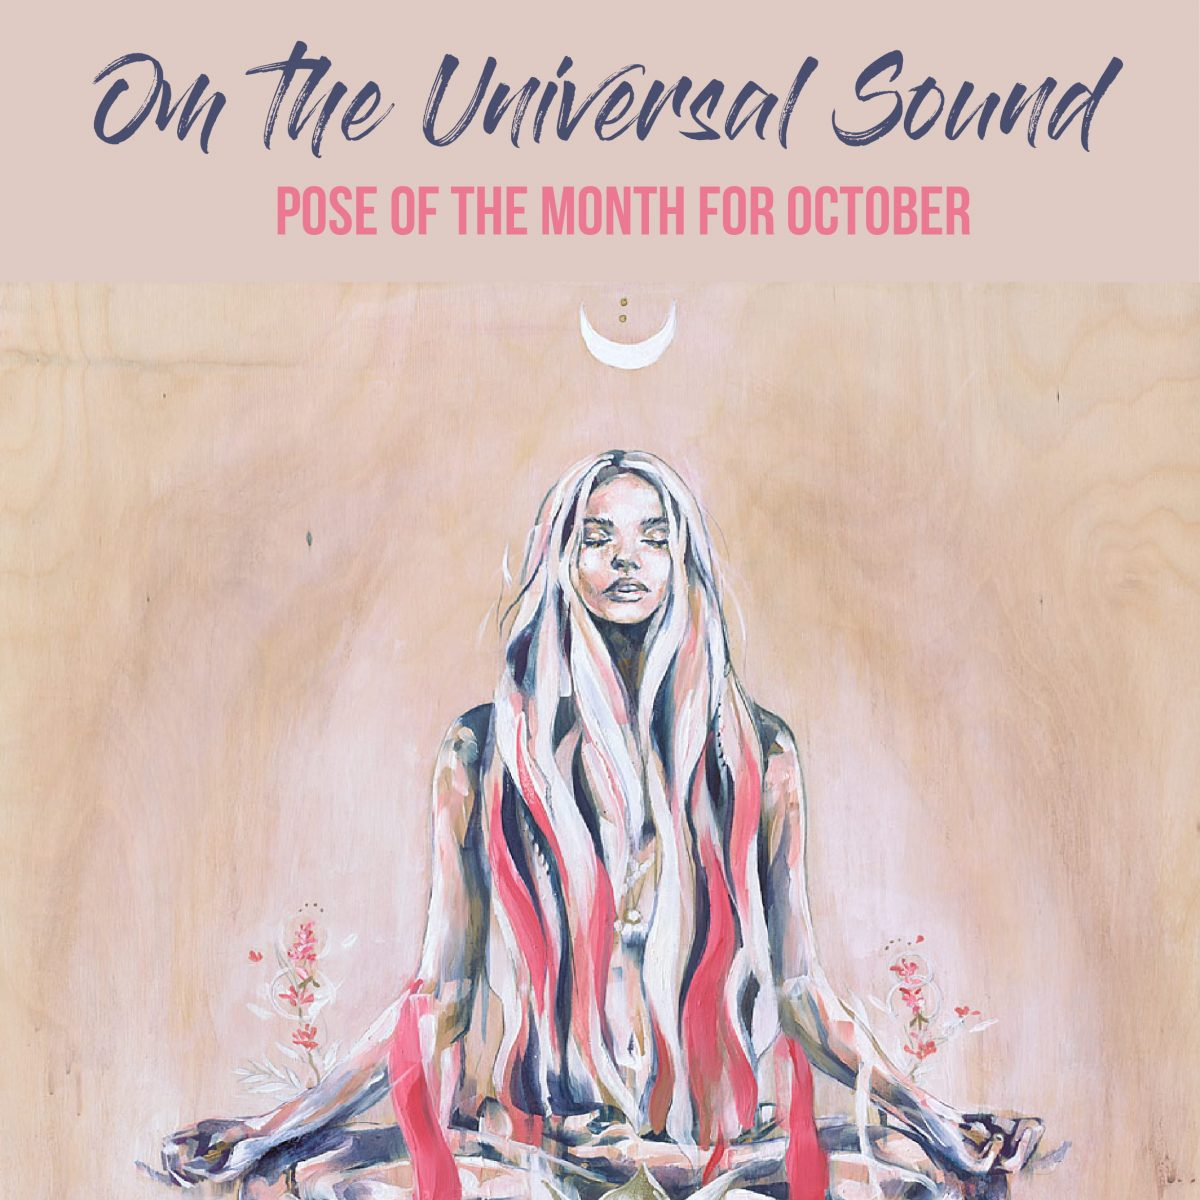 Om the Universal Sound